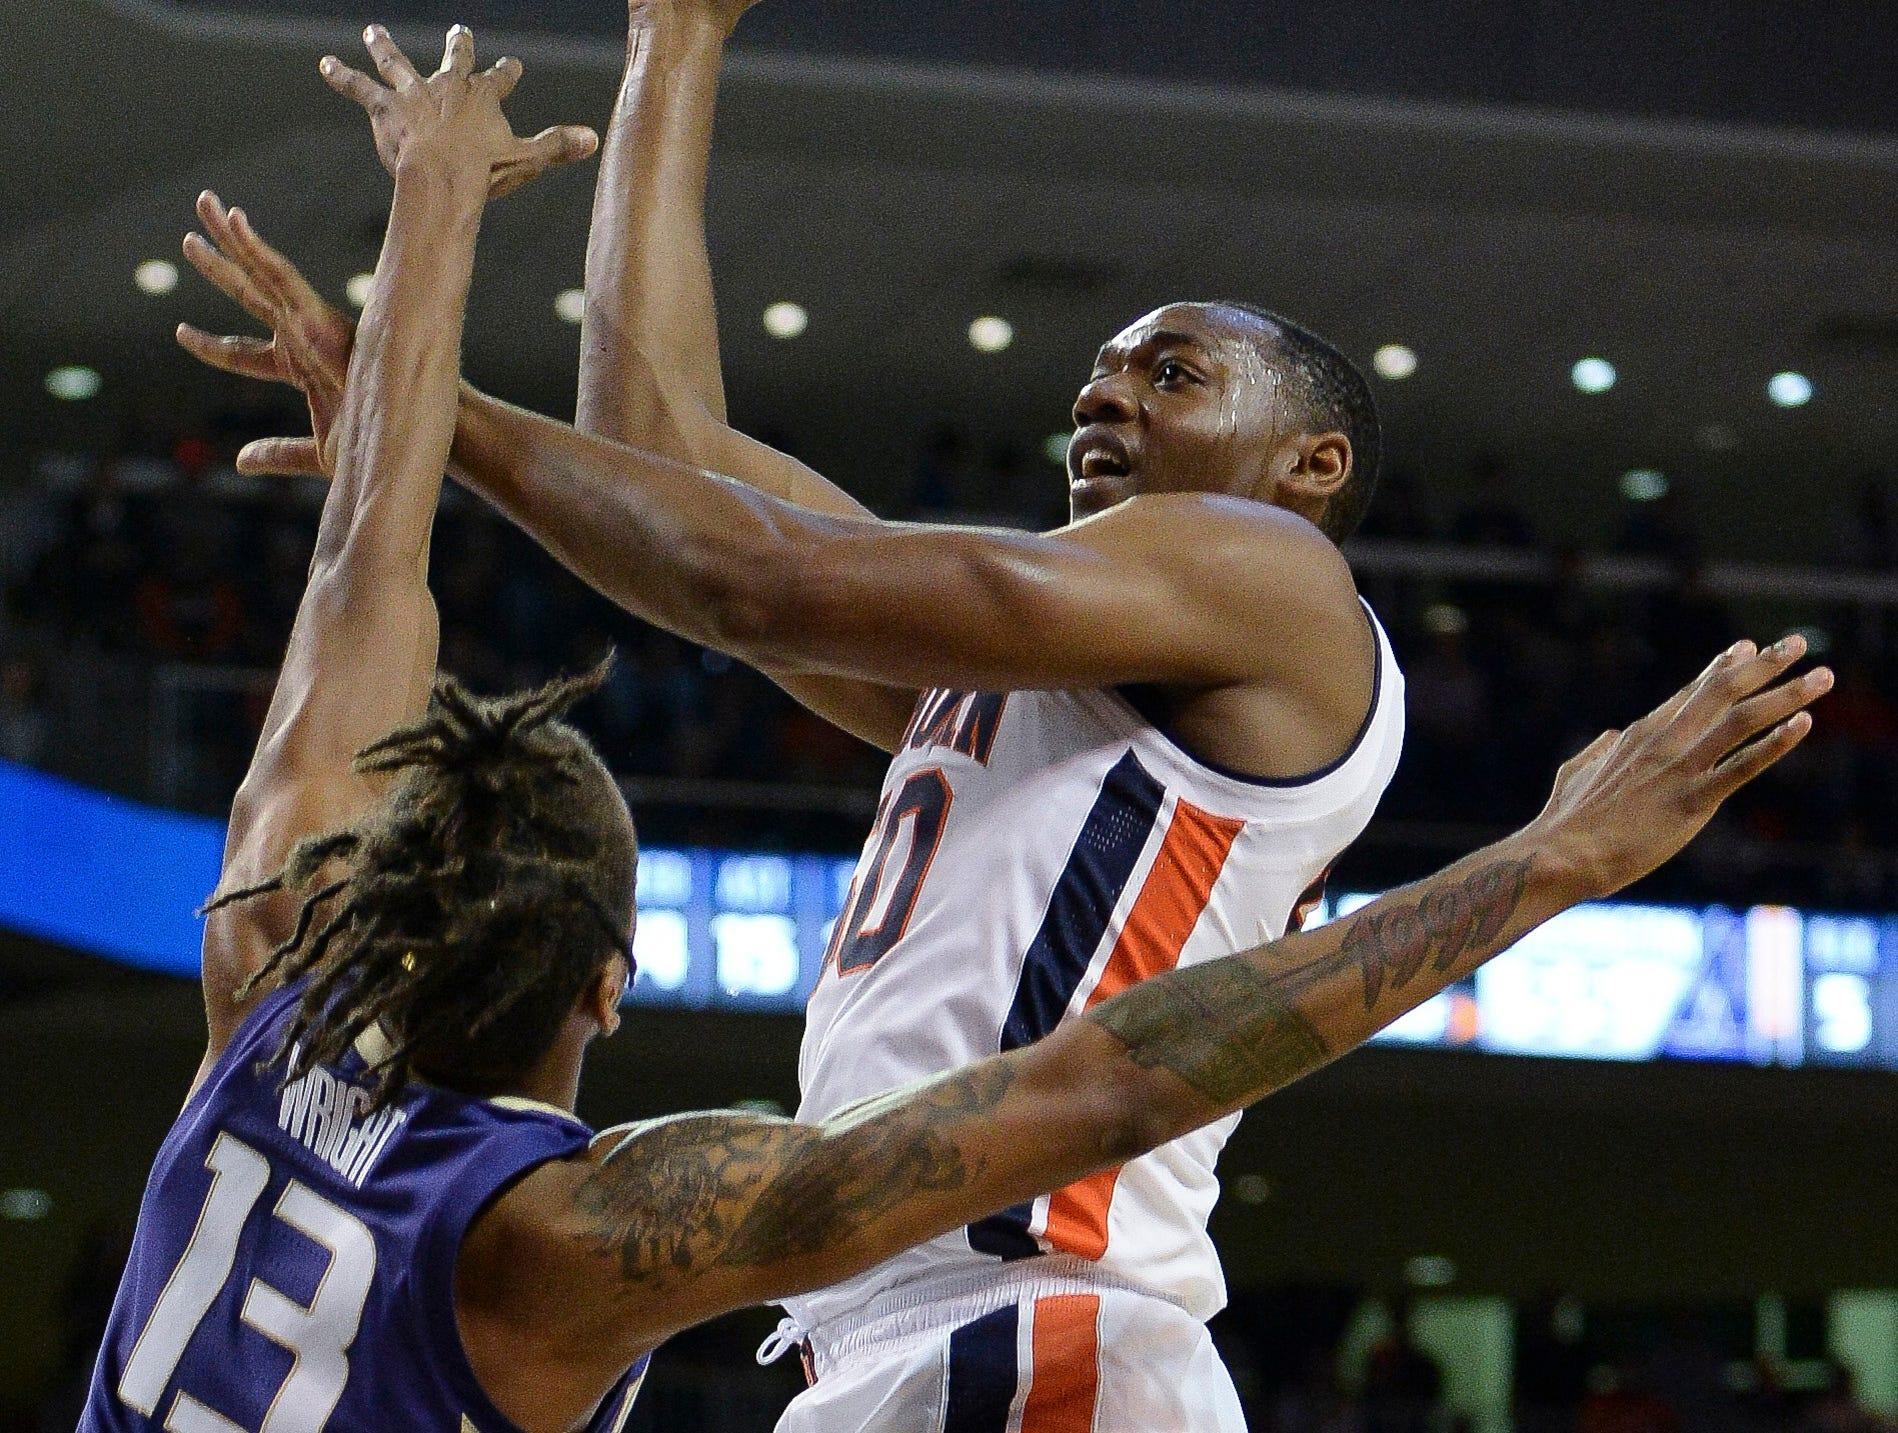 Nov 9, 2018; Auburn, AL, USA; Auburn Tigers center Austin Wiley (50) shoots the ball as Washington Huskies forward Hameir Wright (13) defends at Auburn Arena. Mandatory Credit: Julie Bennett-USA TODAY Sports